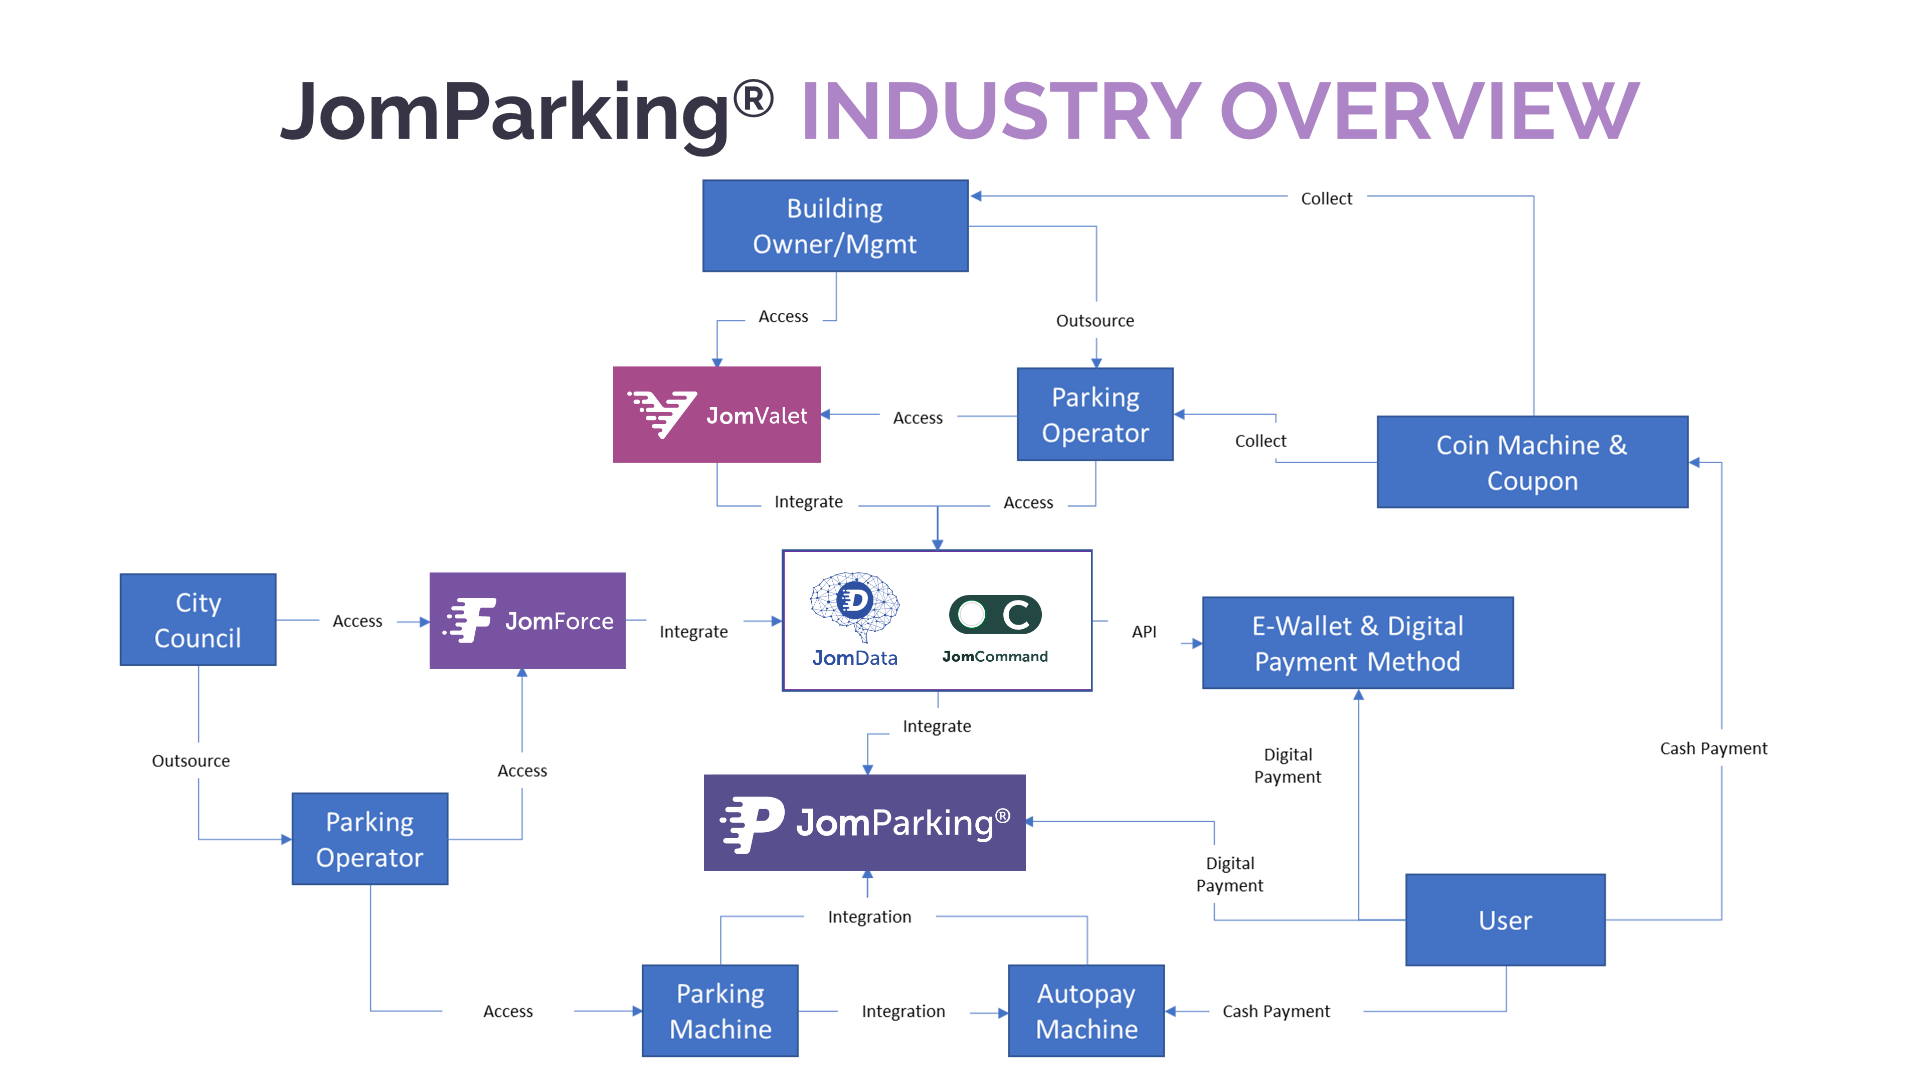 JomParking® Industry Overview